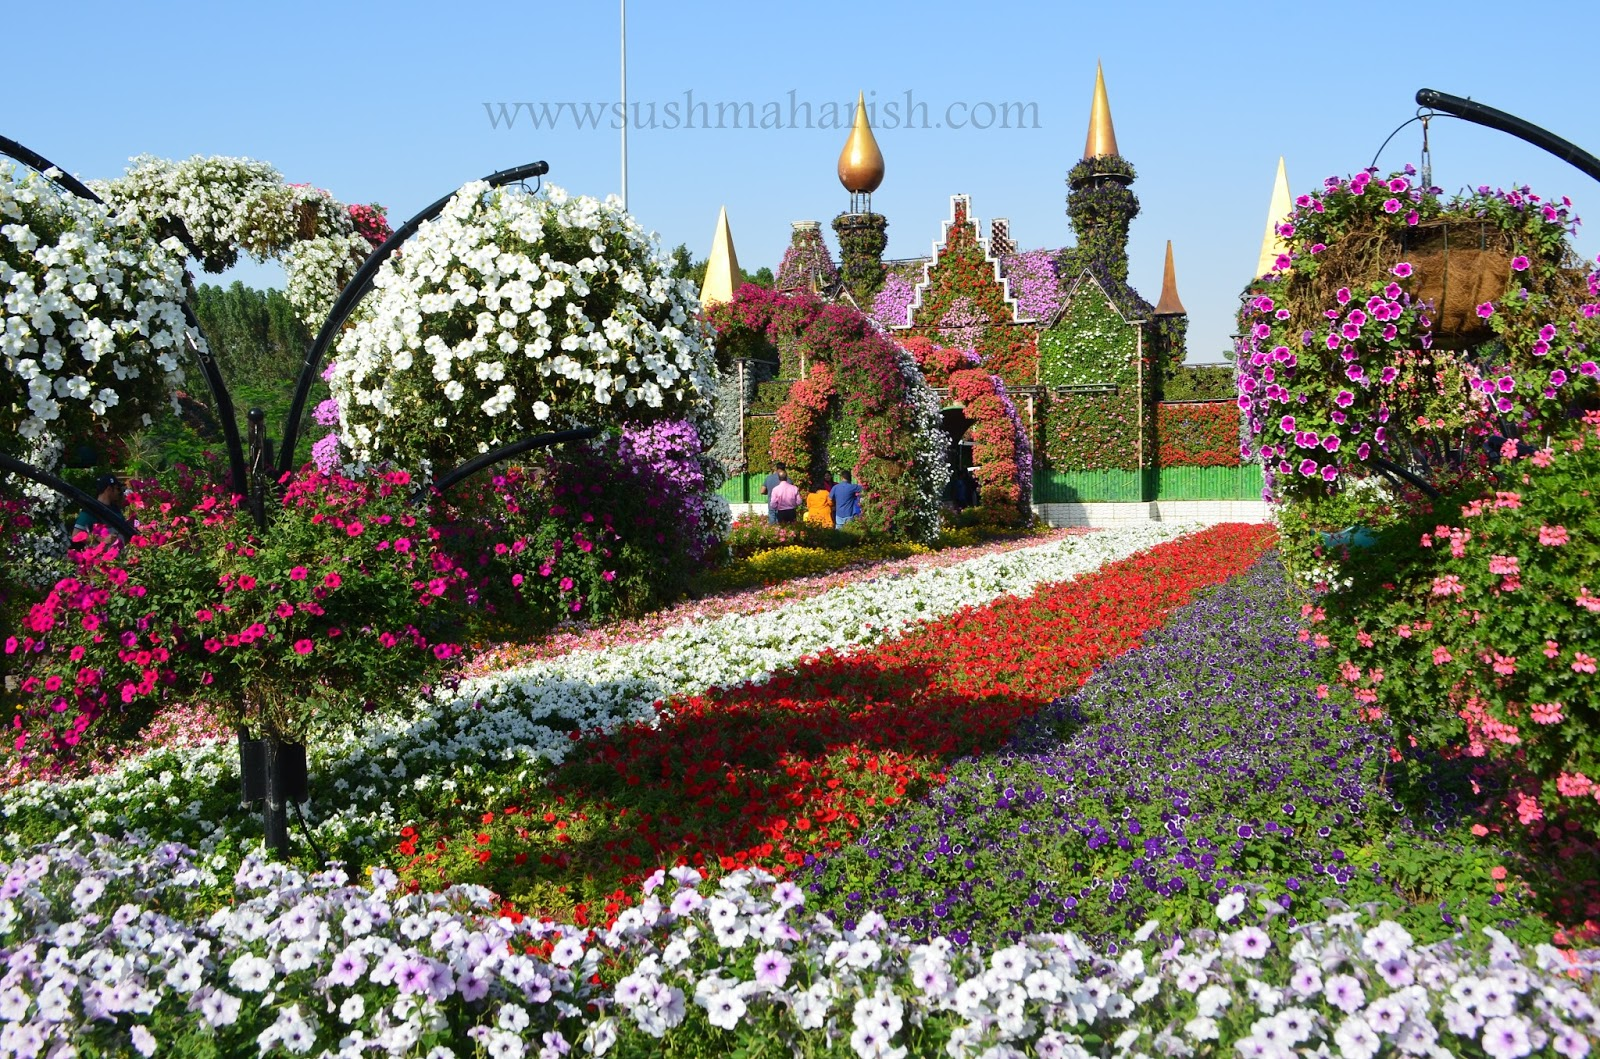 Exploring Beyond The Skyscrapers. Largest Flower Garden Of The World - Miracle Garden Dubai. 28